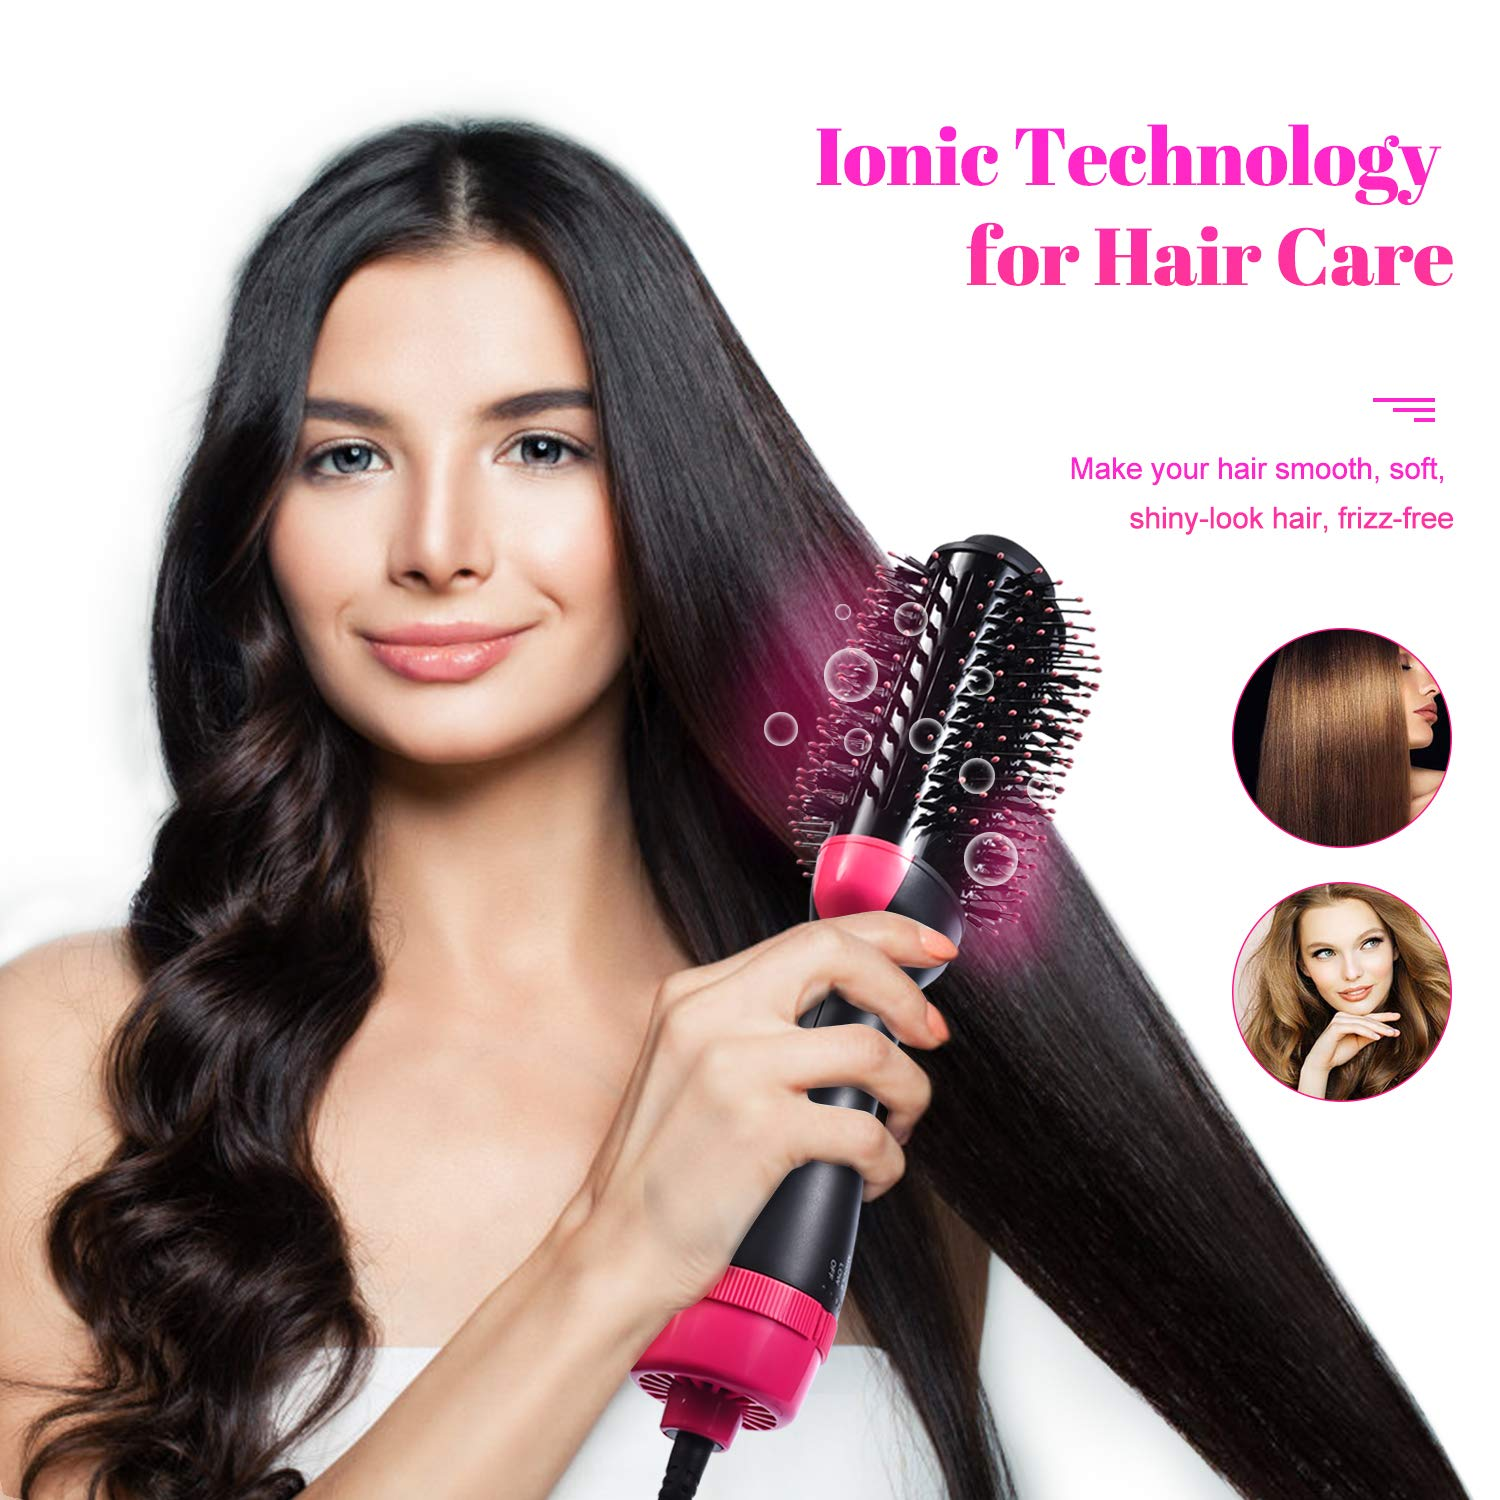 Hair Dryer Brush, WLWQ One Step Hair Dryer & Volumizer 3-in-1 Salon Negative Ion Hot Air Brush Hair Straightening Brush and Curly Hair Comb Reduce Frizz and Static